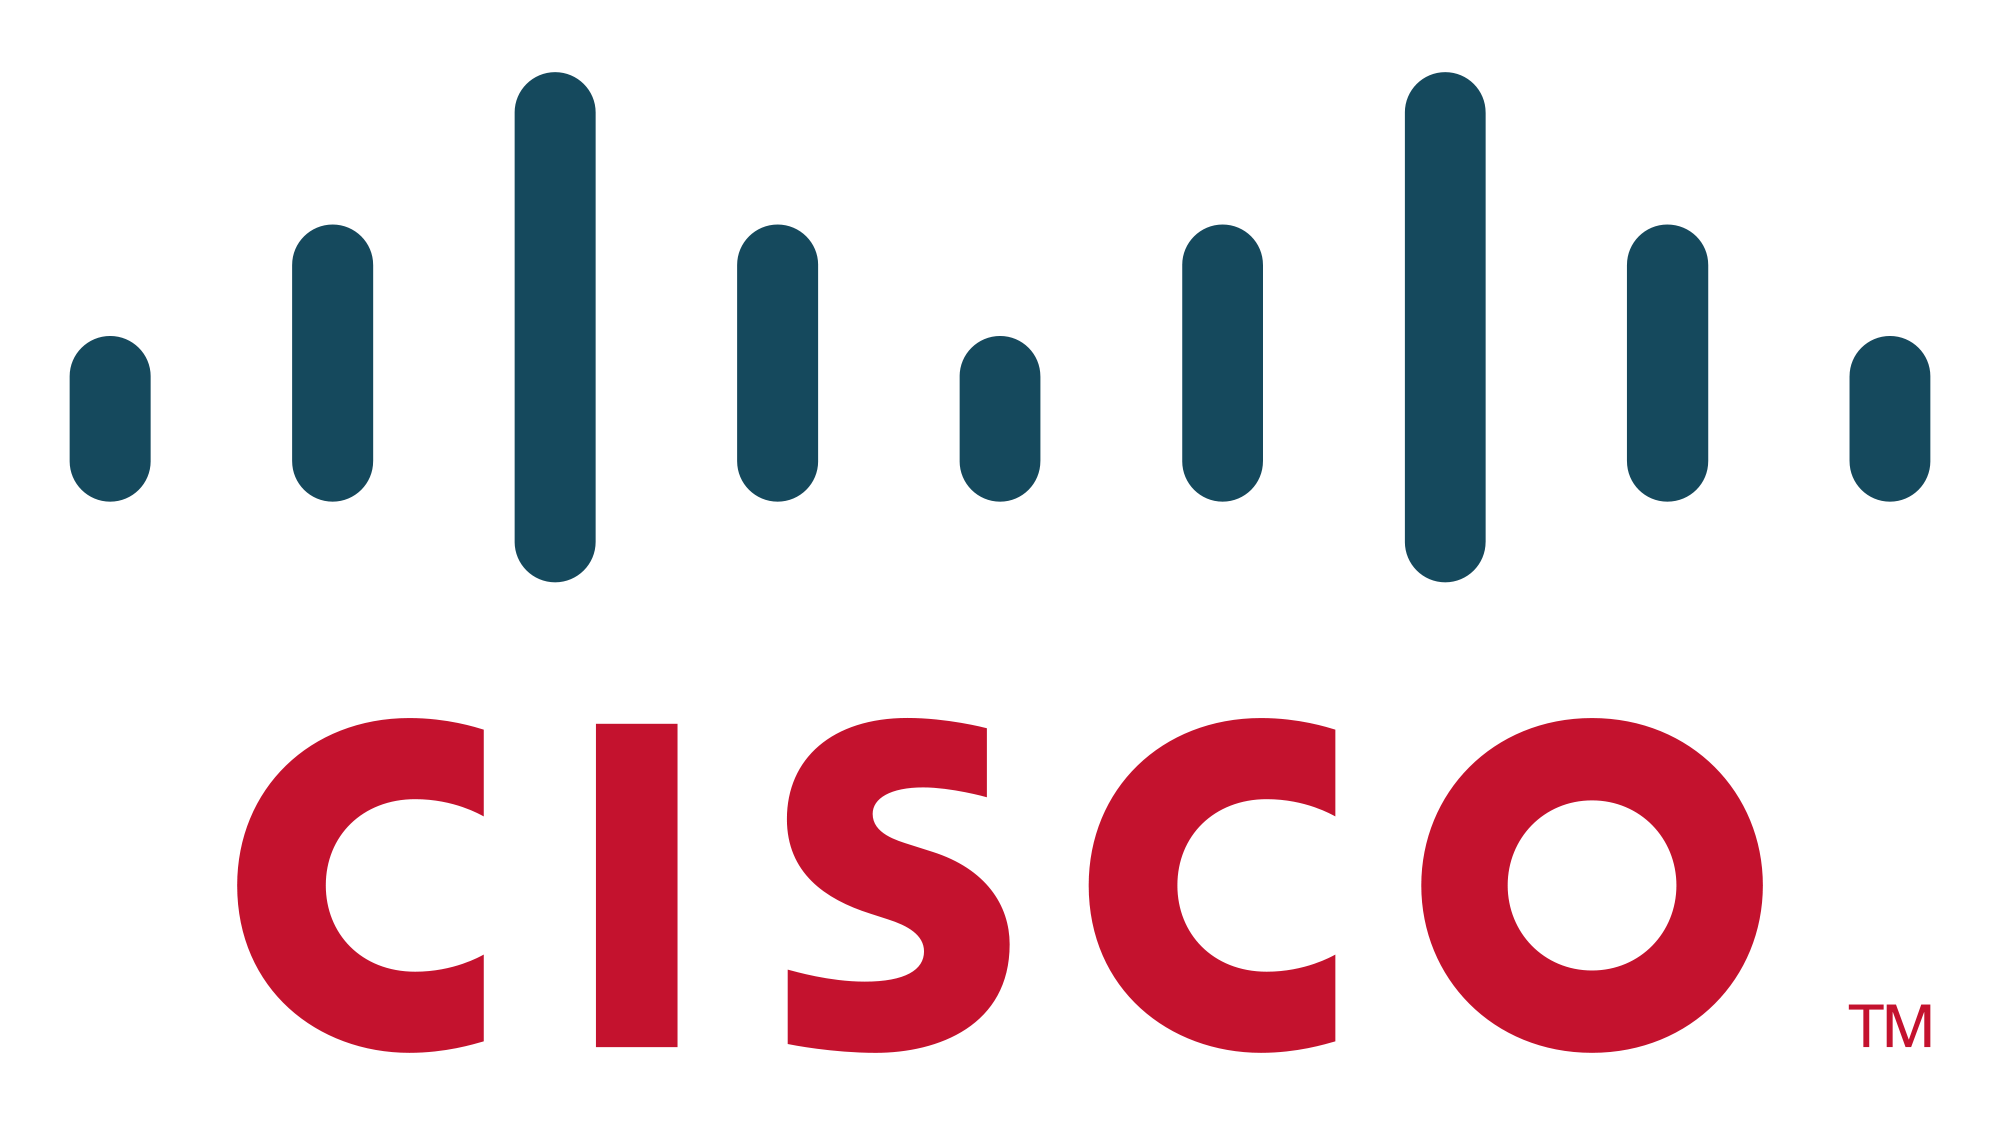 Cisco To Acquire Hyper-Converged Technology Partner Springpath For $320 Million